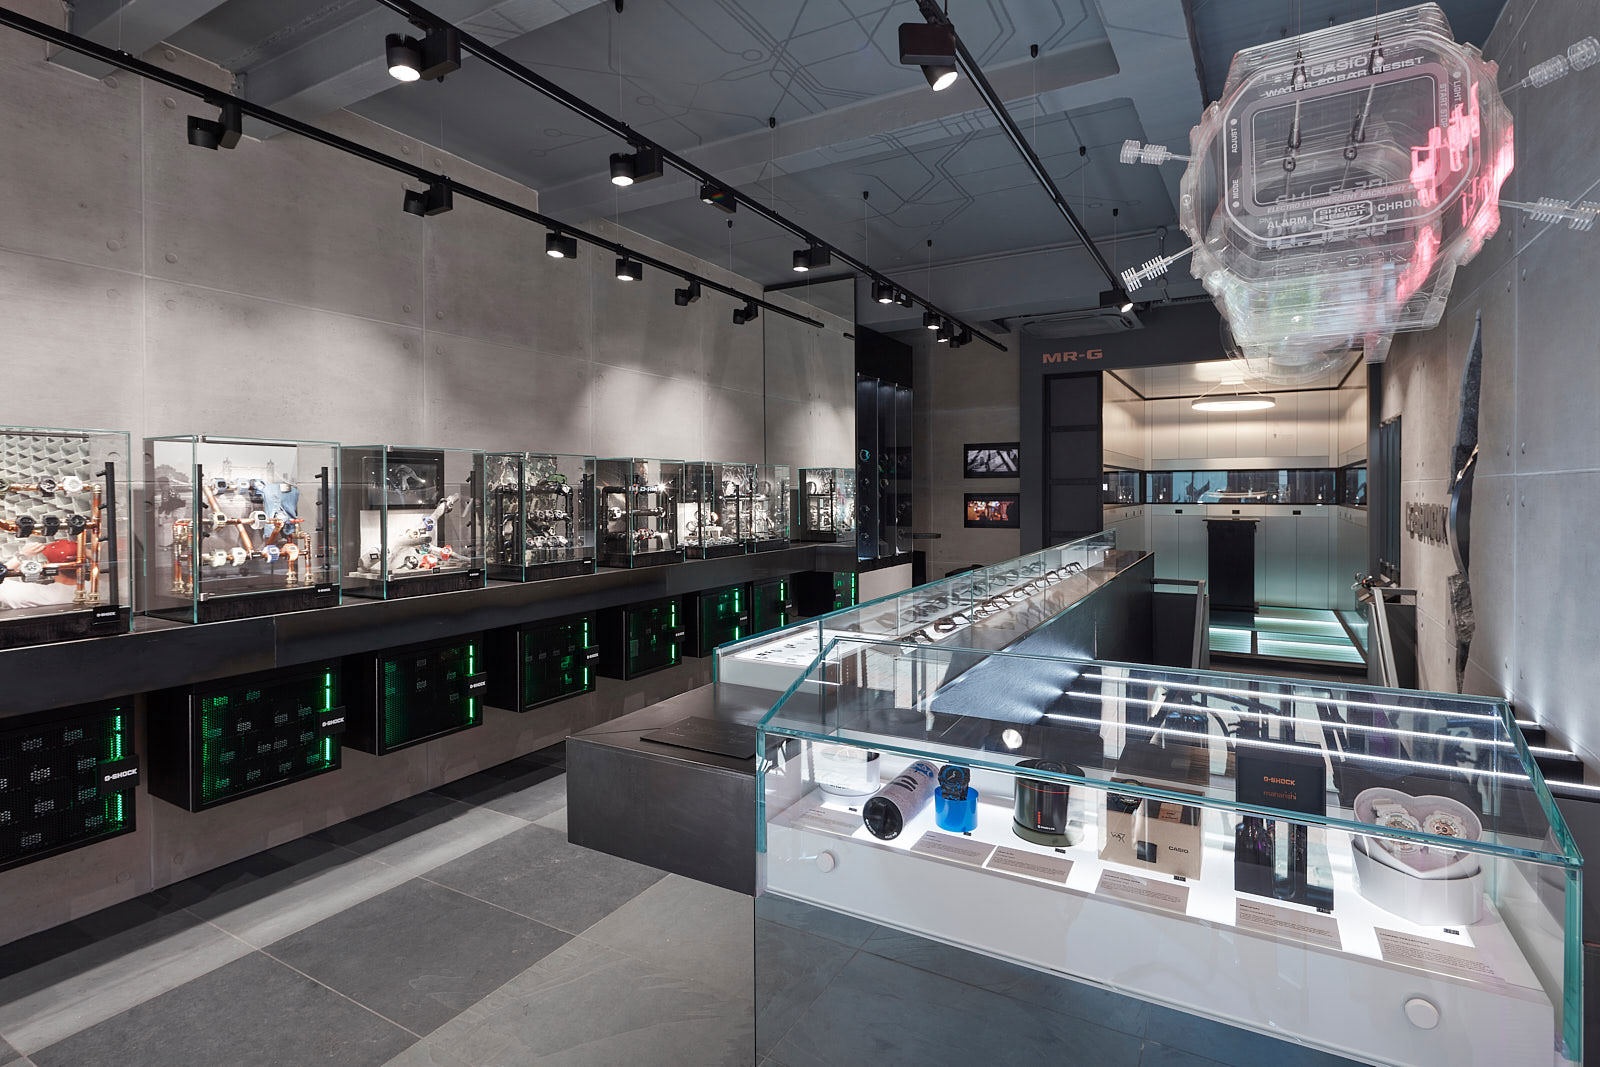 G Shock Retail Store Display Cases